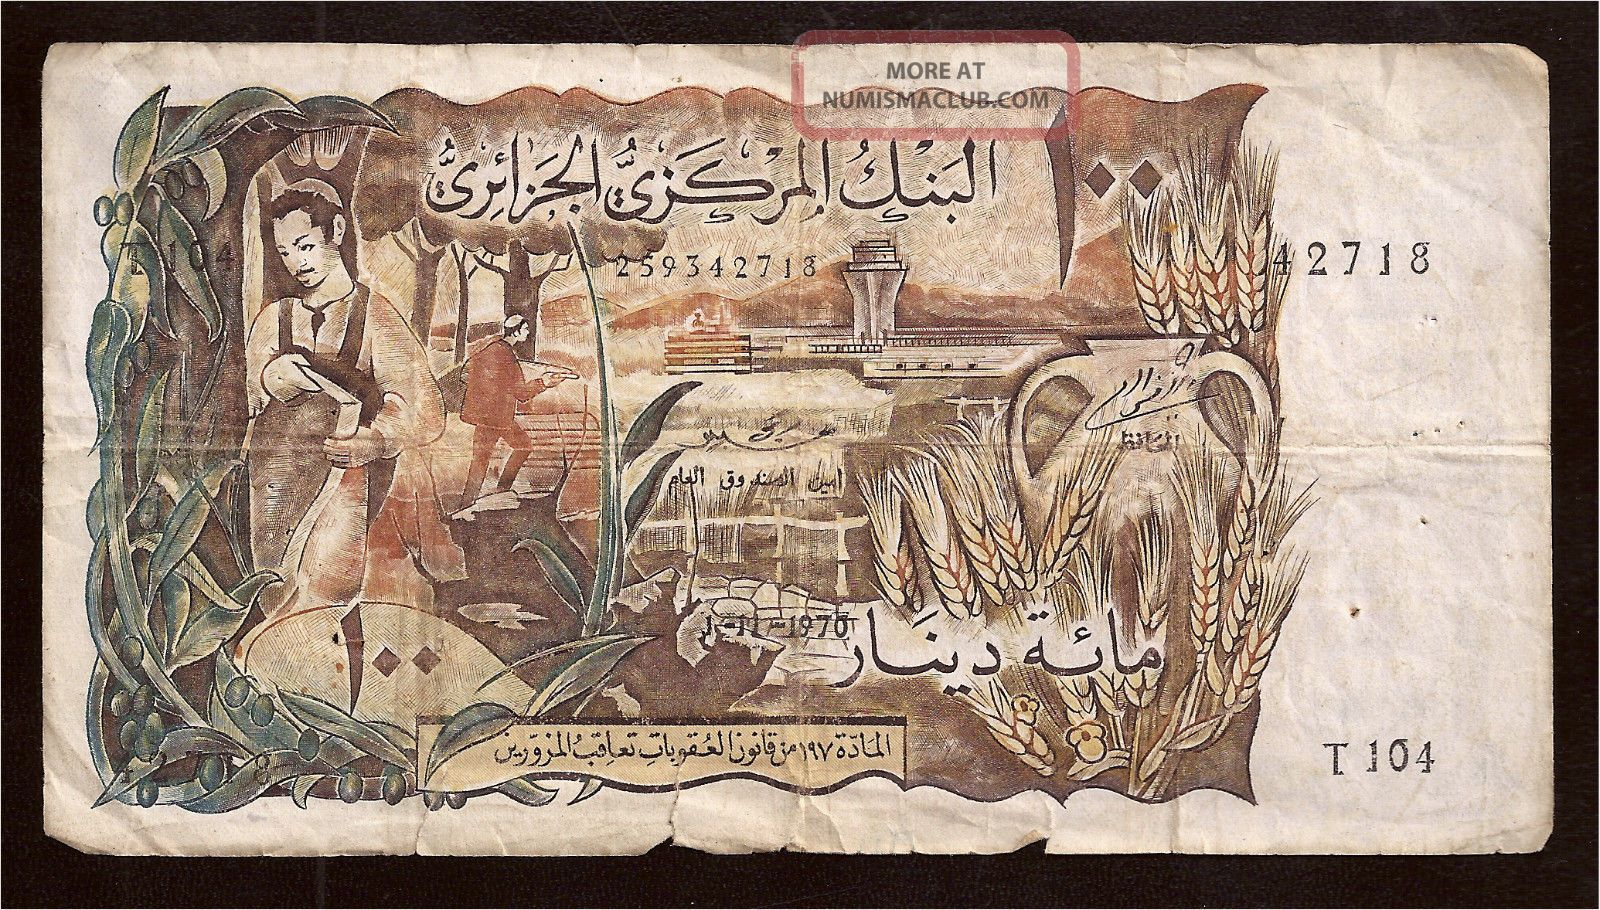 World Paper Money - Algeria 100 Dinars 1970 P128 @ Good Cond. Africa photo